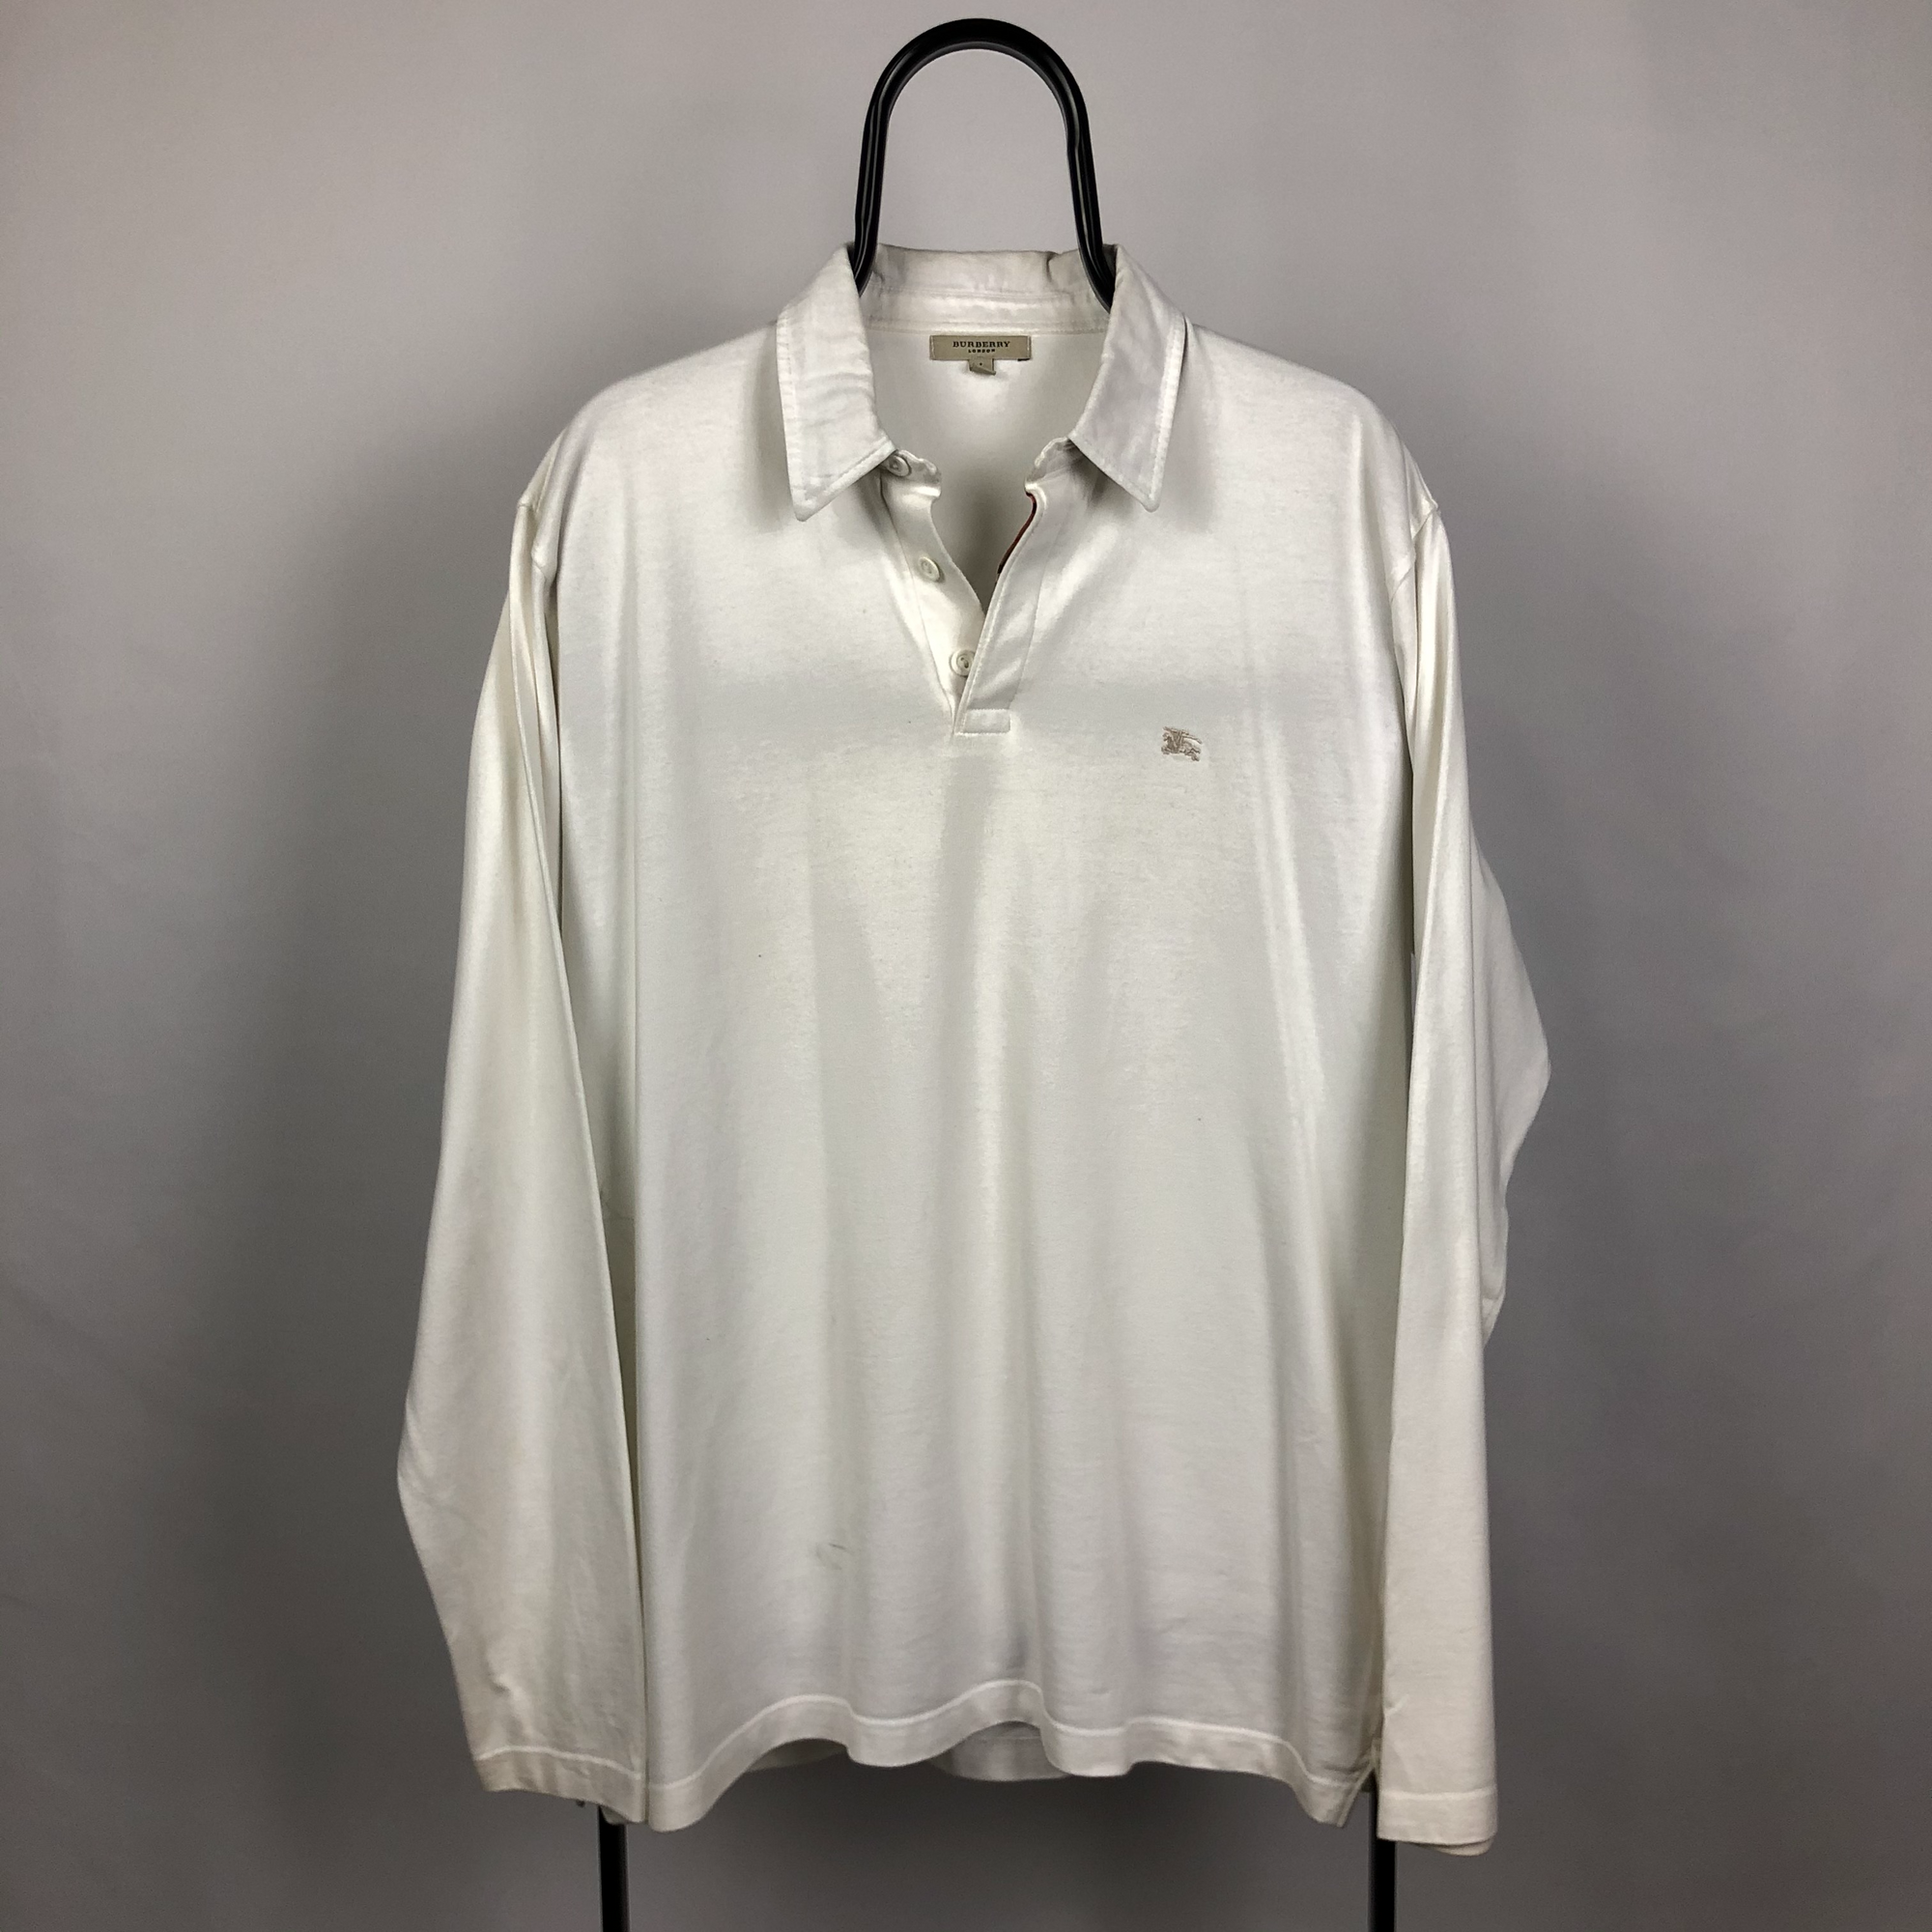 Burberry Shirt in White - Men's Large/Women's XL